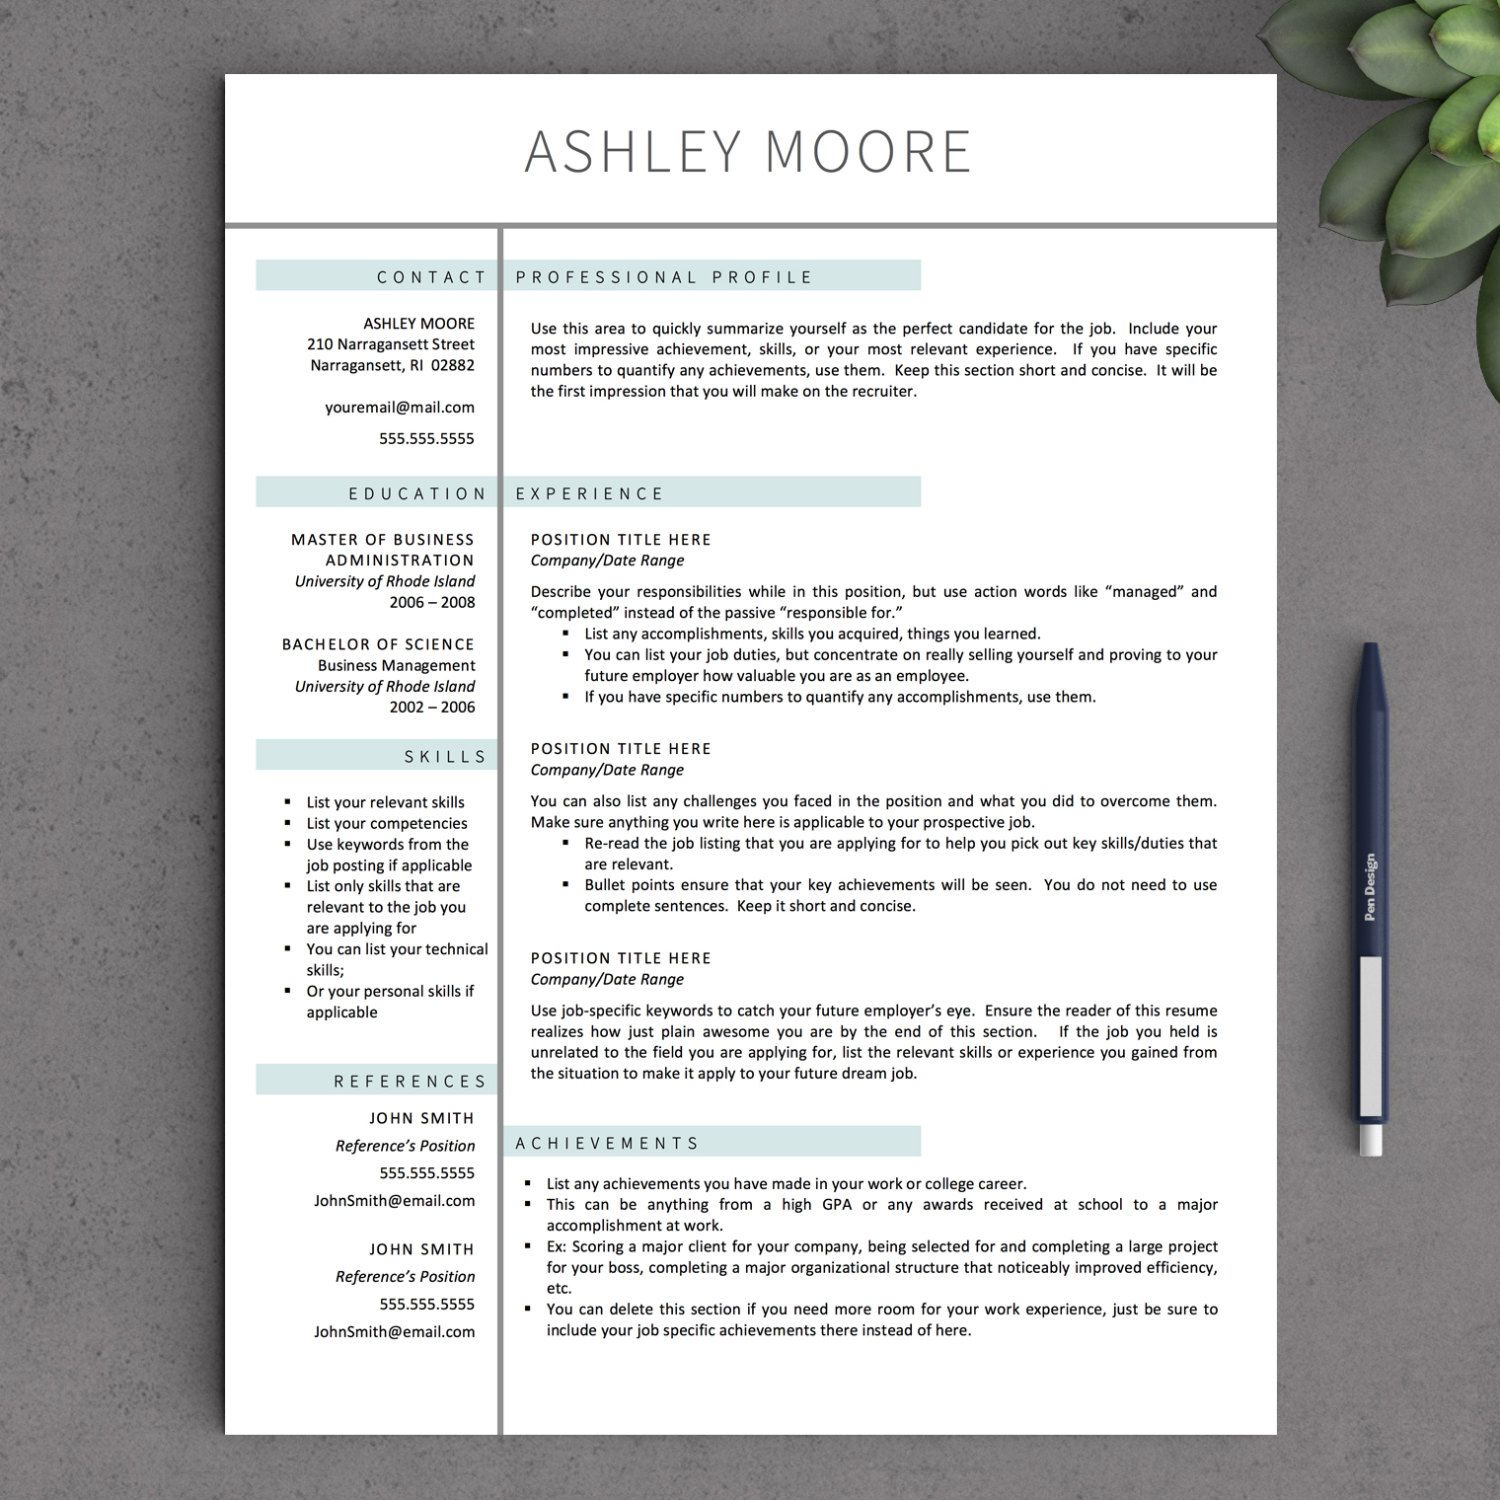 Famous 10 Best Resumes Thin 10 Steps To Creating An Effective Resume Clean 100 Free Resume 1099 Employee Contract Template Young 1300 Resume Government Samples Selection Criteria Red15 Minute Schedule Template 221.png (1241×1740) | Resume | Pinterest | Professional Resume, Of ..